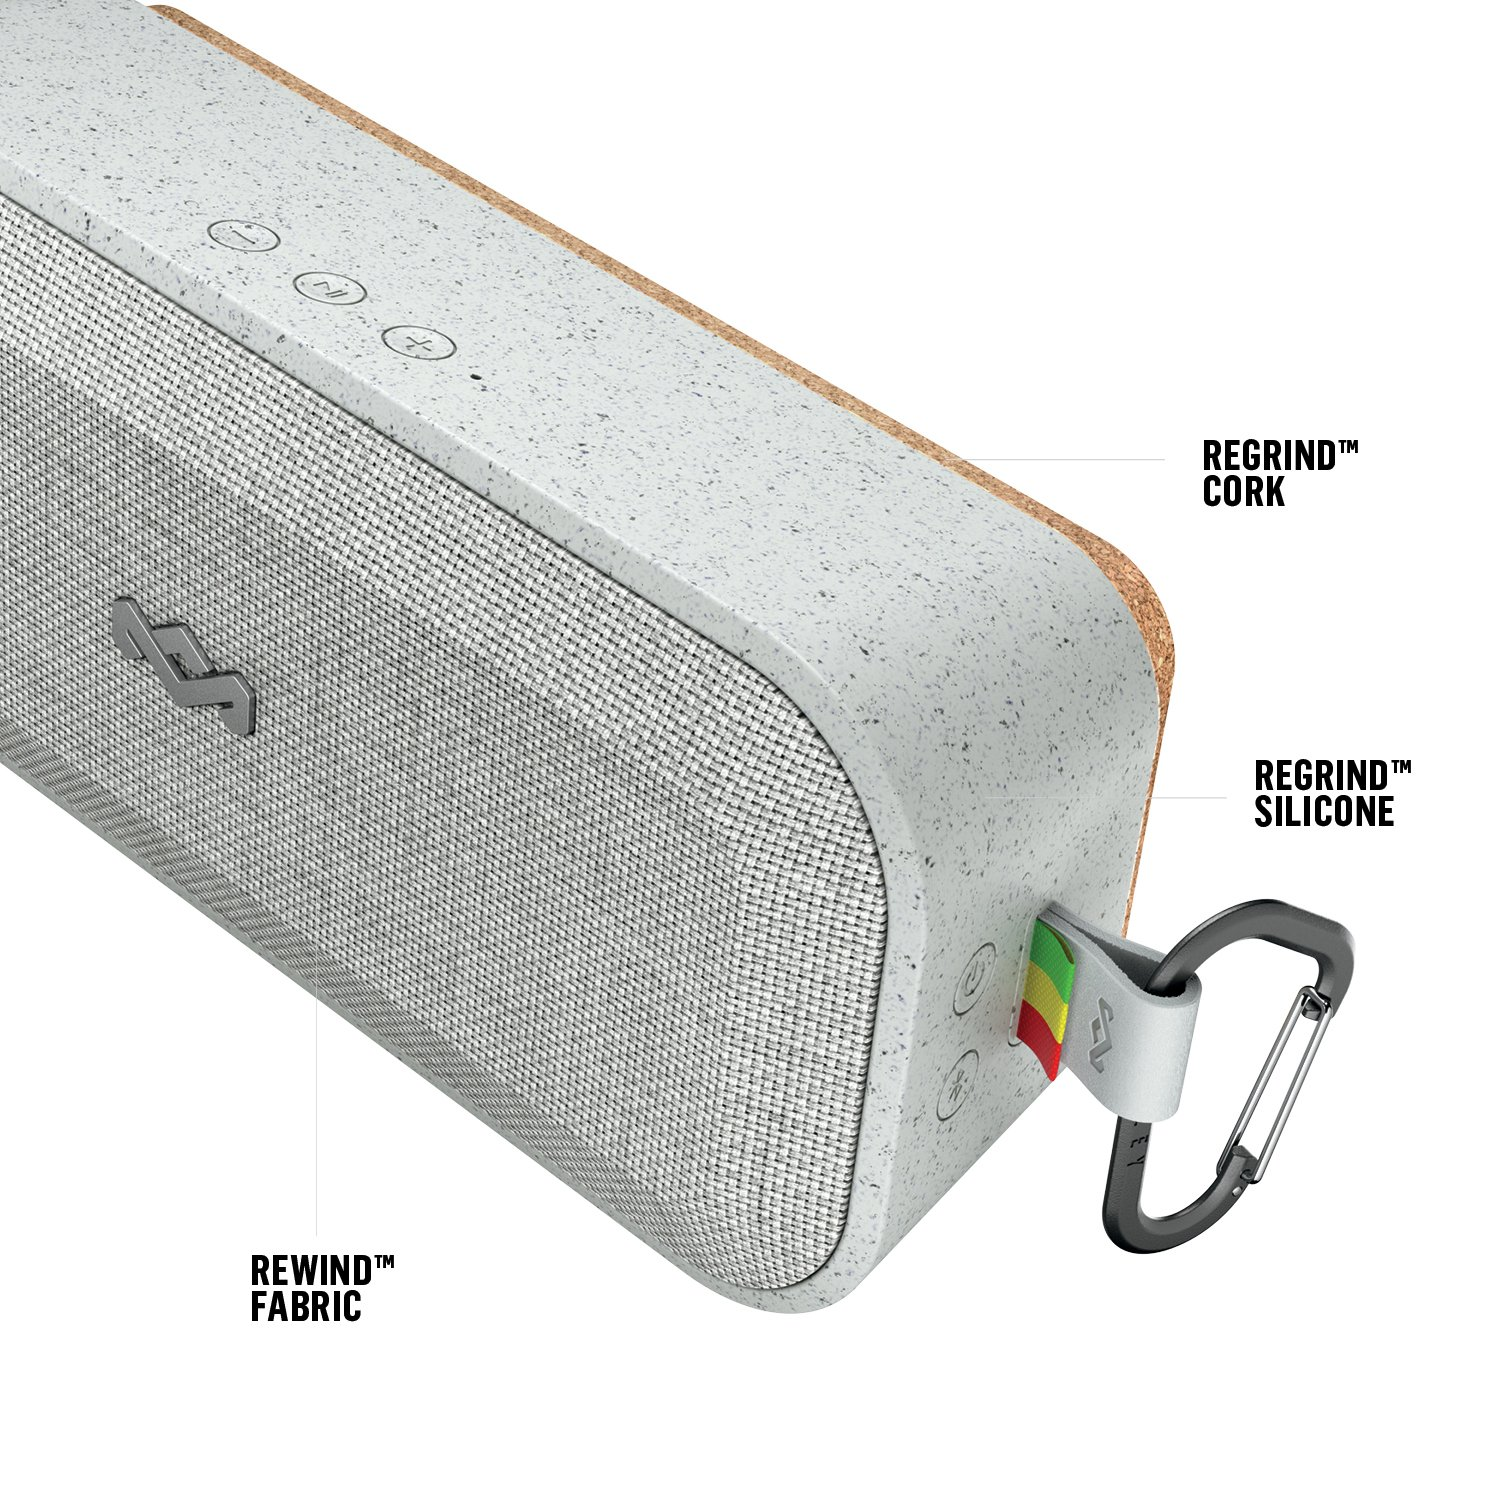 House of Marley EM-JA017-GY - Altavoz Bluetooth Impermeable con 16 Horas de batería, Color Gris: Amazon.es: Electrónica